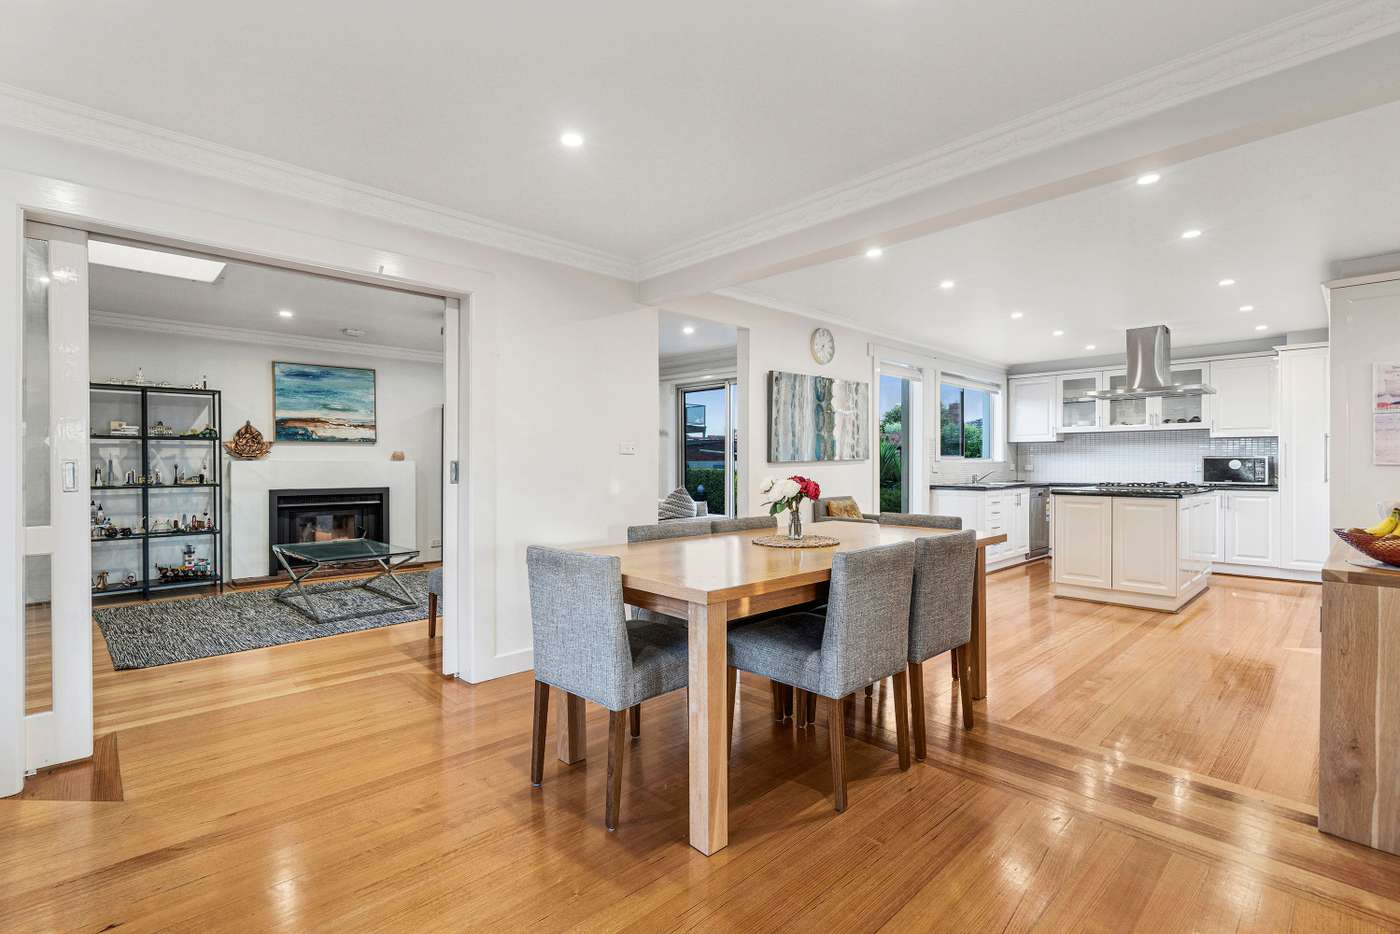 Fifth view of Homely house listing, 96 Jacksons Road, Mulgrave VIC 3170